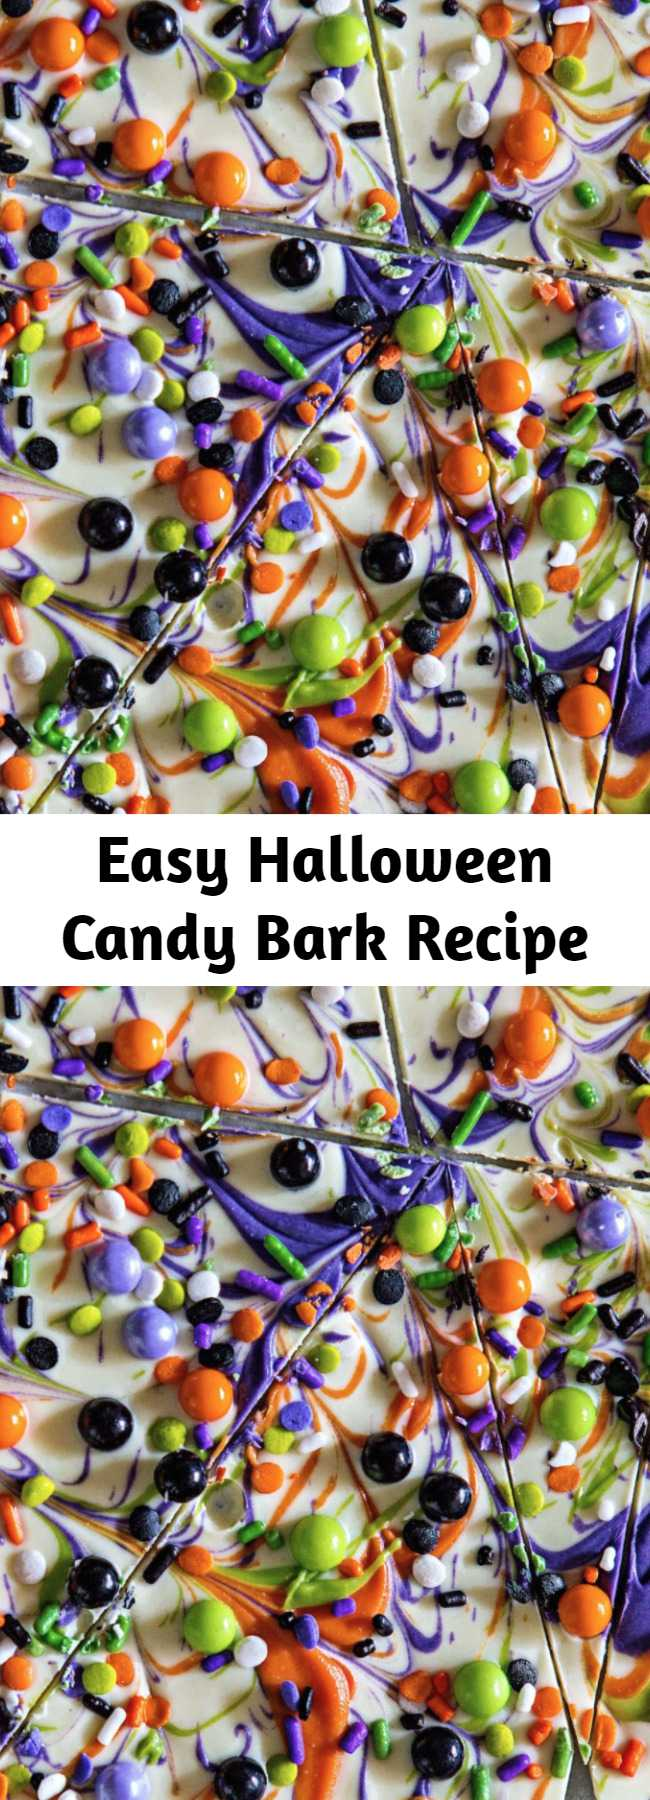 Easy Halloween Candy Bark Recipe - This white chocolate bark is probably the most simple from-scratch Halloween treat you can make.